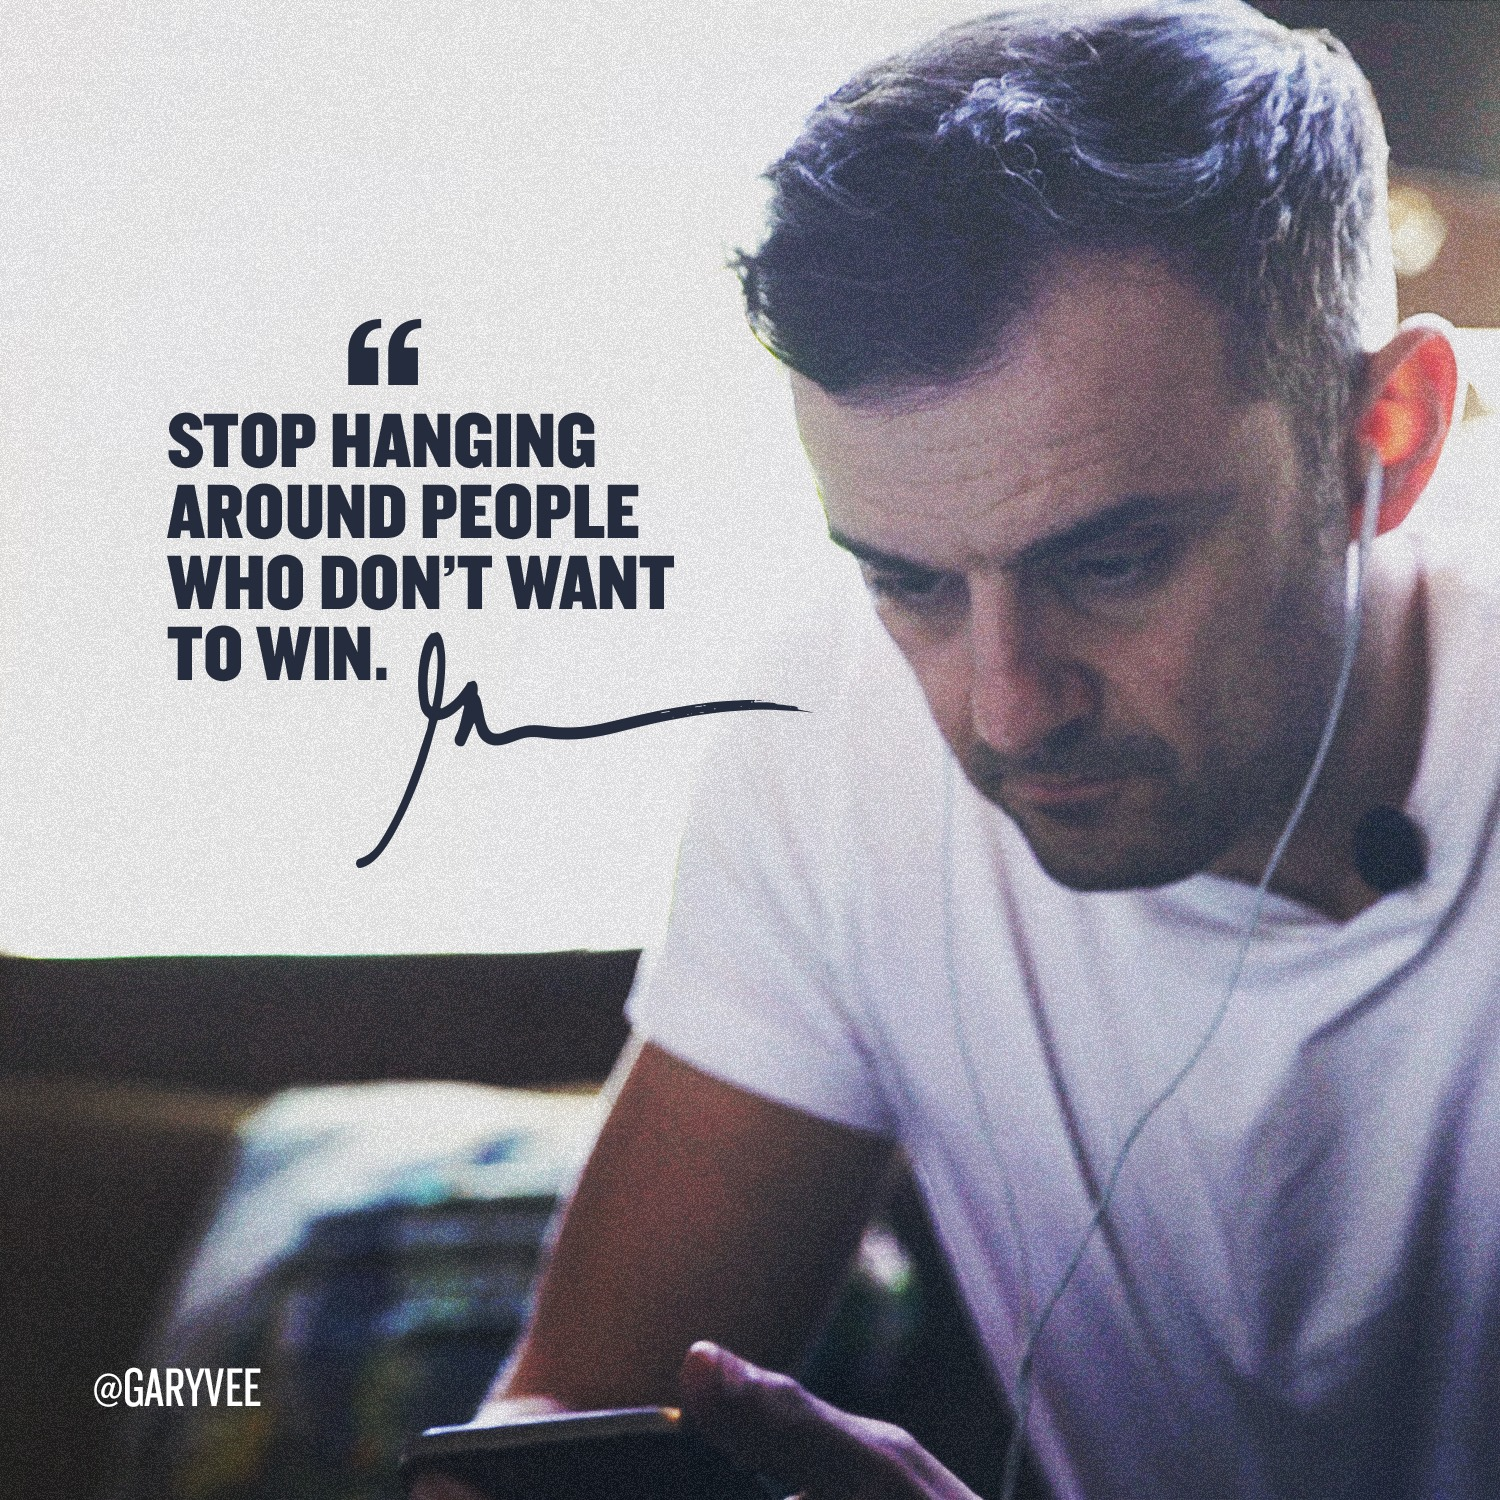 Gary Vaynerchuk Quotes 30 great Gary Vaynerchuk quotes about work ethic   EliteSavvy.com Gary Vaynerchuk Quotes